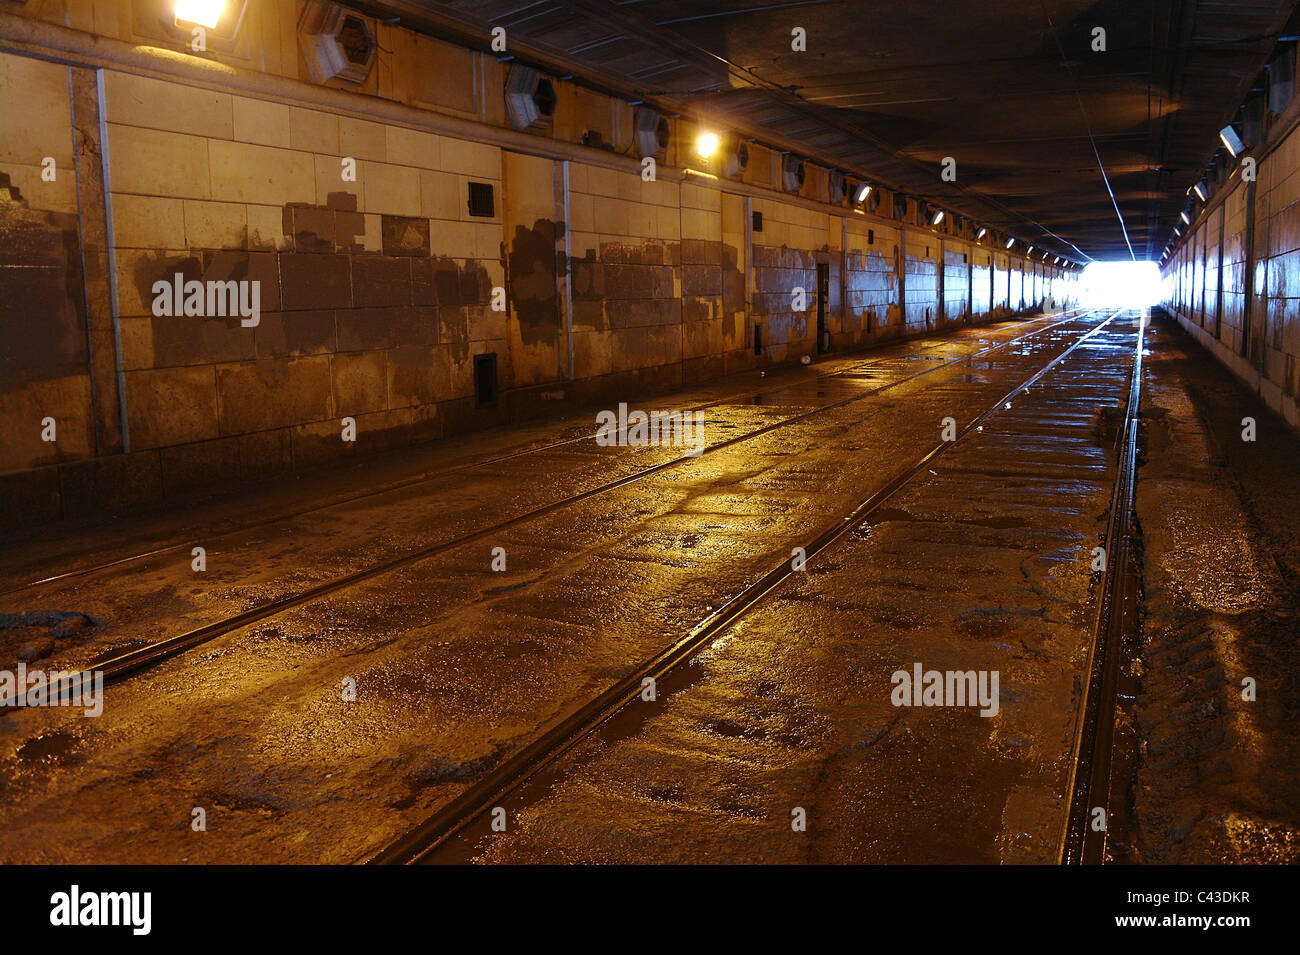 Tram rails in the shined tunnel, Moscow, Russia - Stock Image